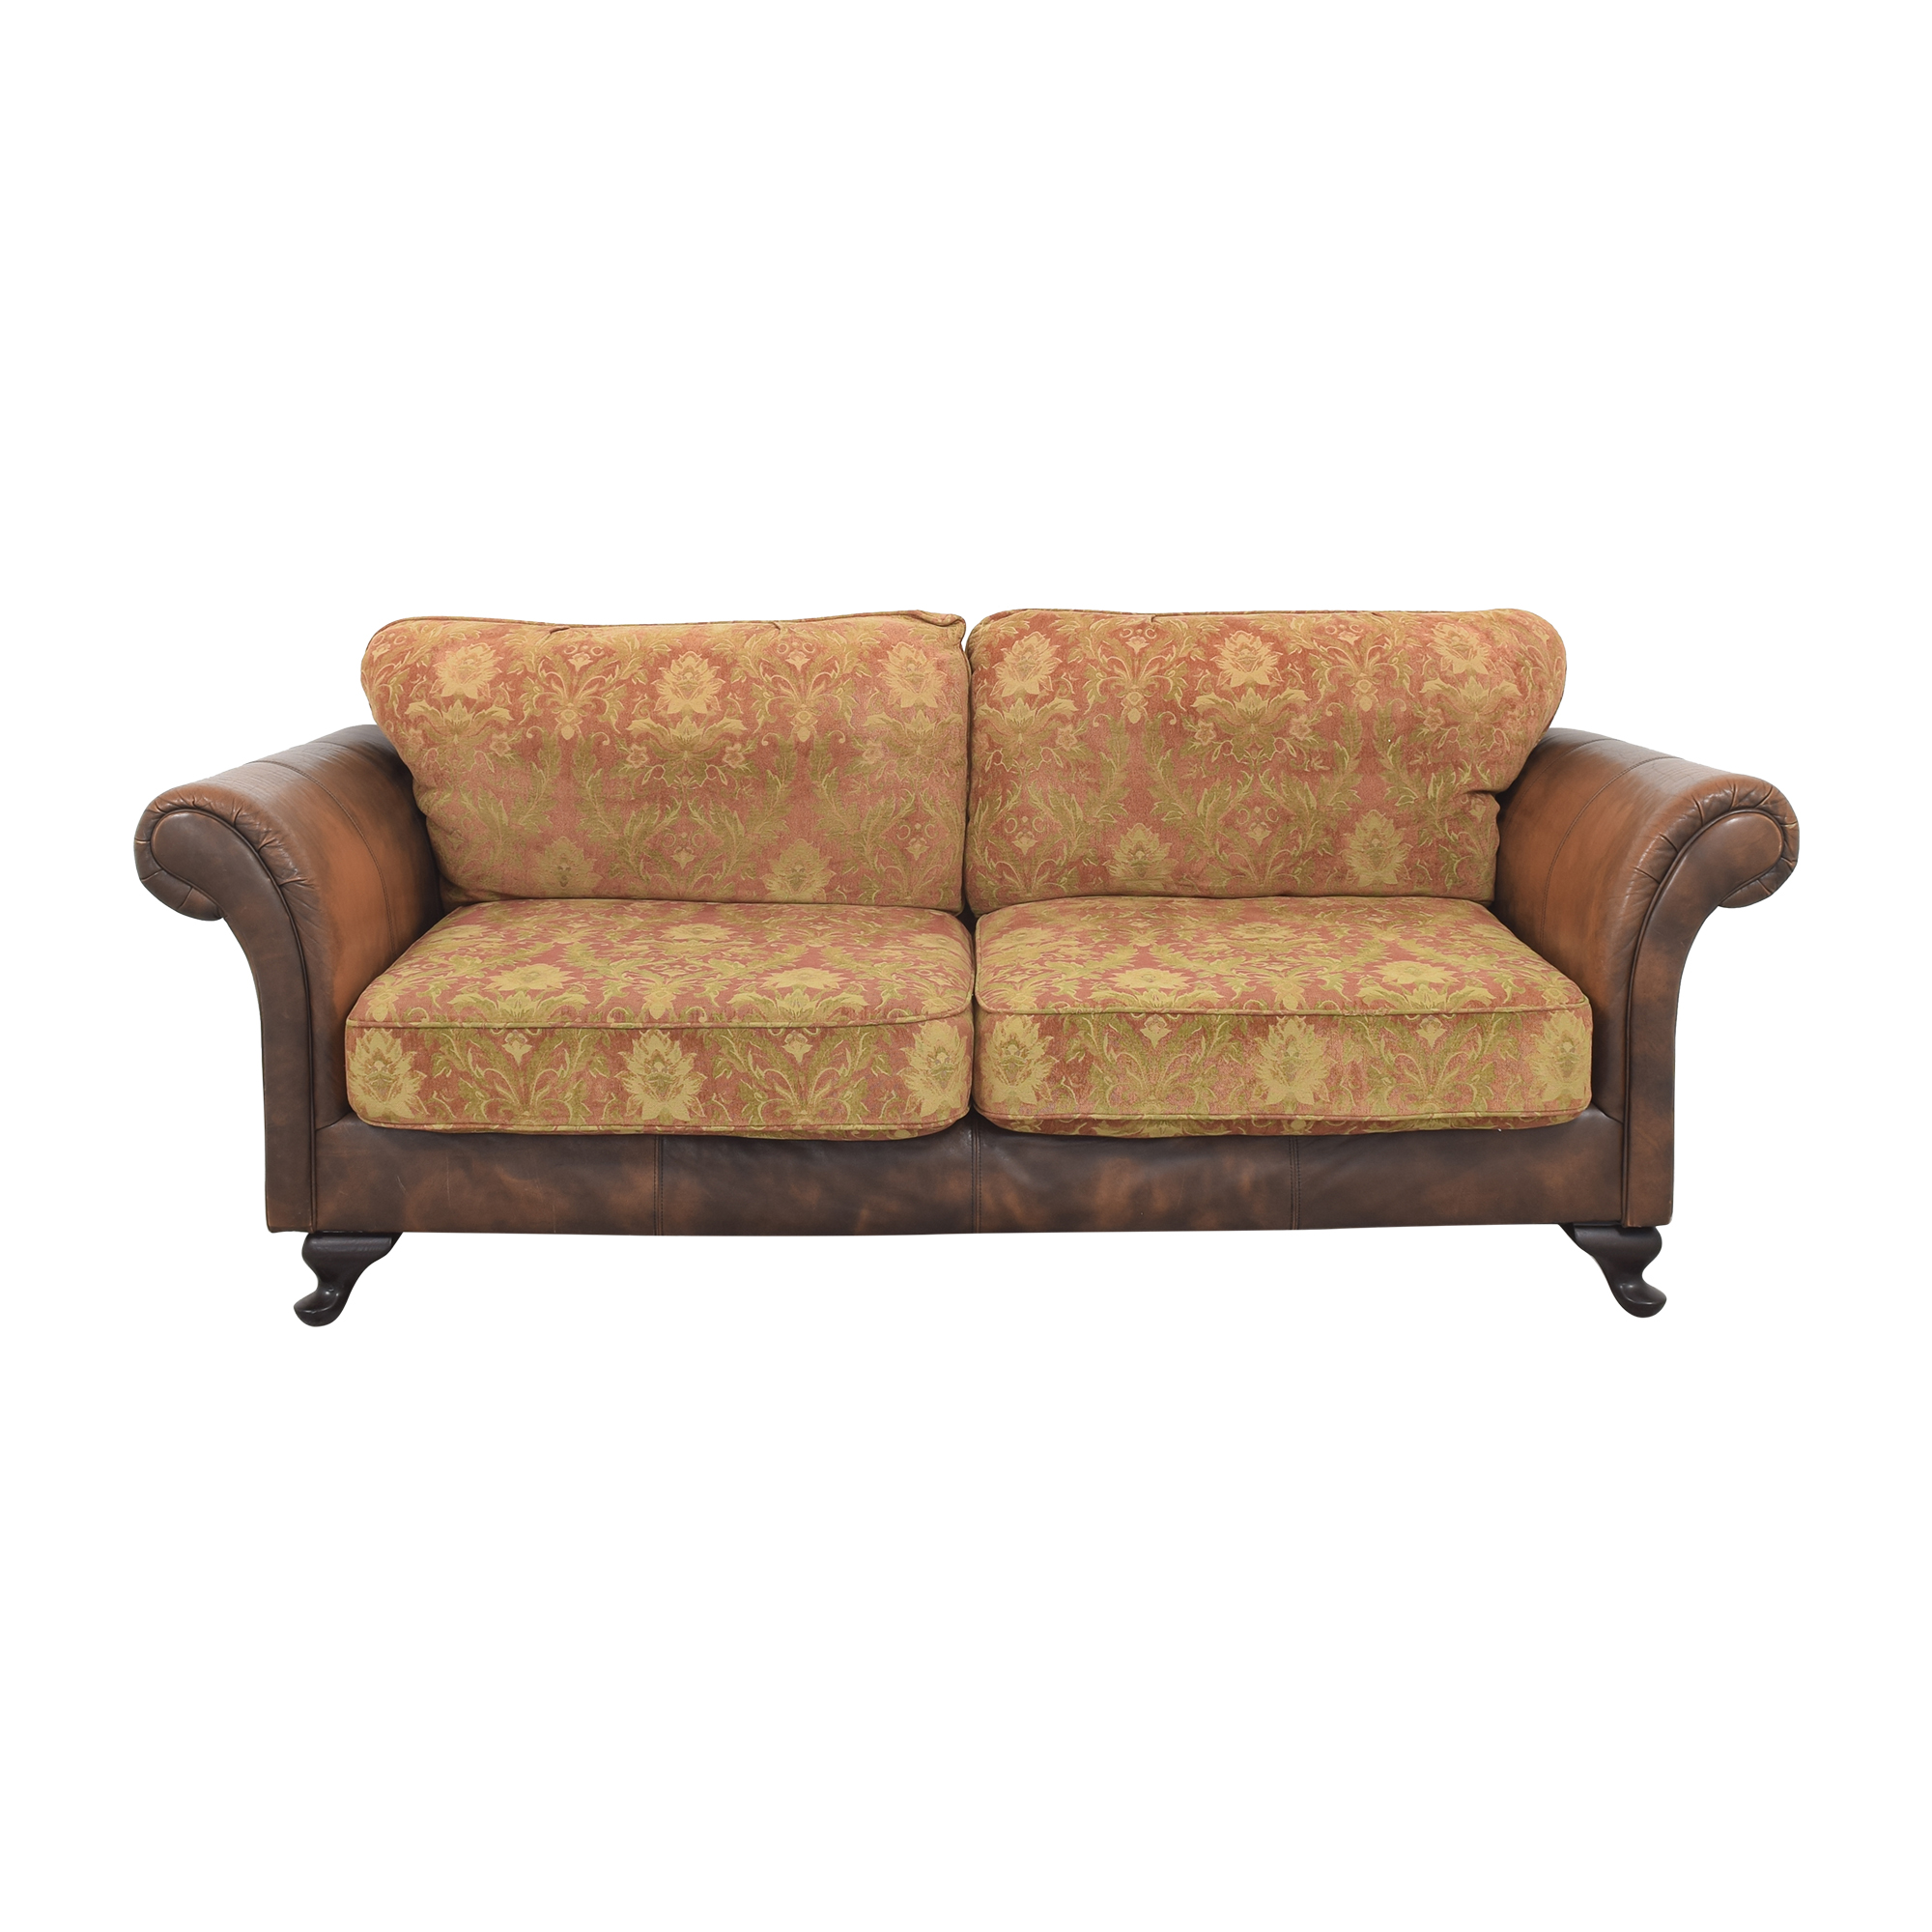 Bernhardt Bernhardt Henri Sofa on sale